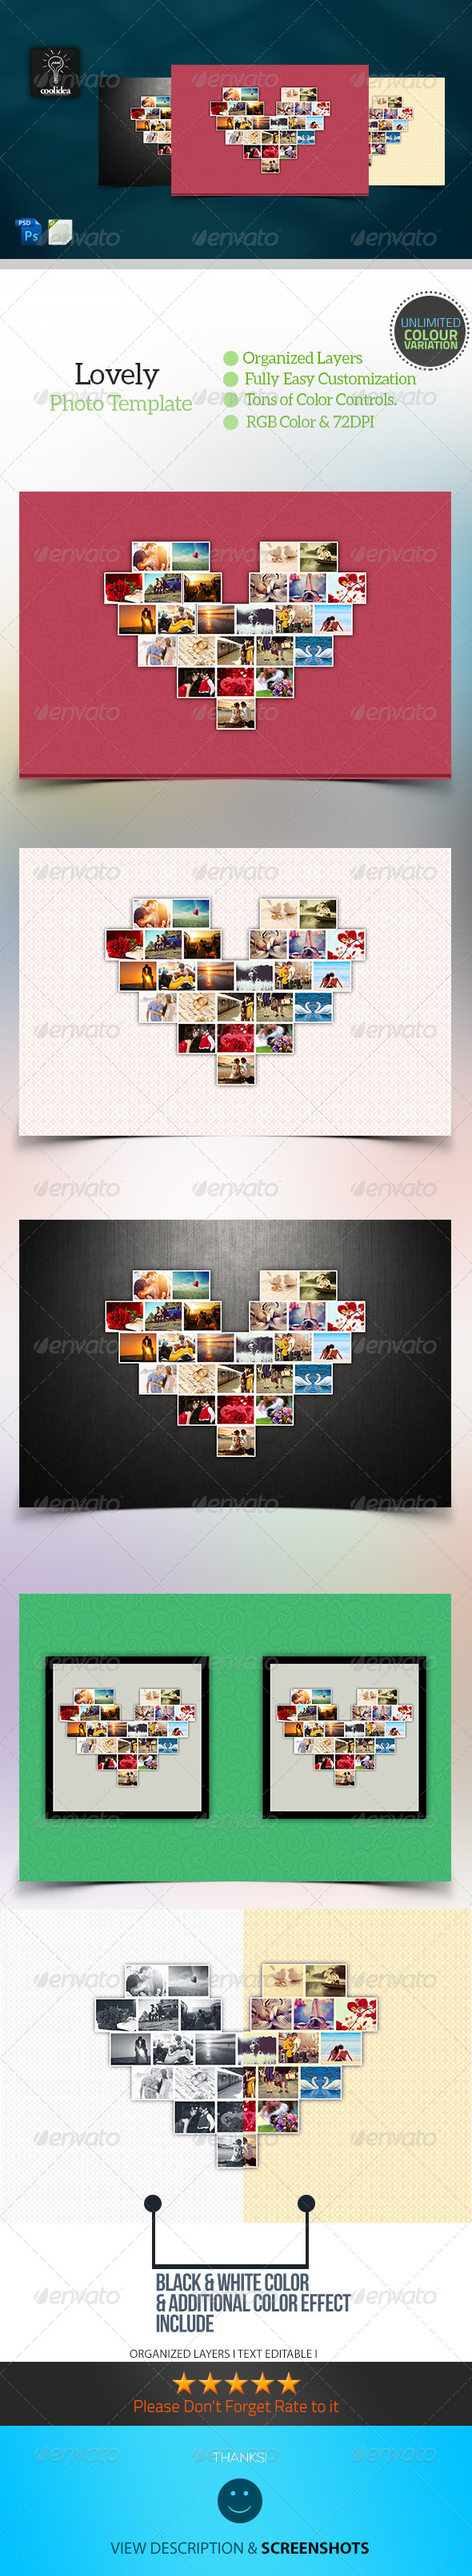 Lovely Heart Photo Template - Photo Templates Graphics